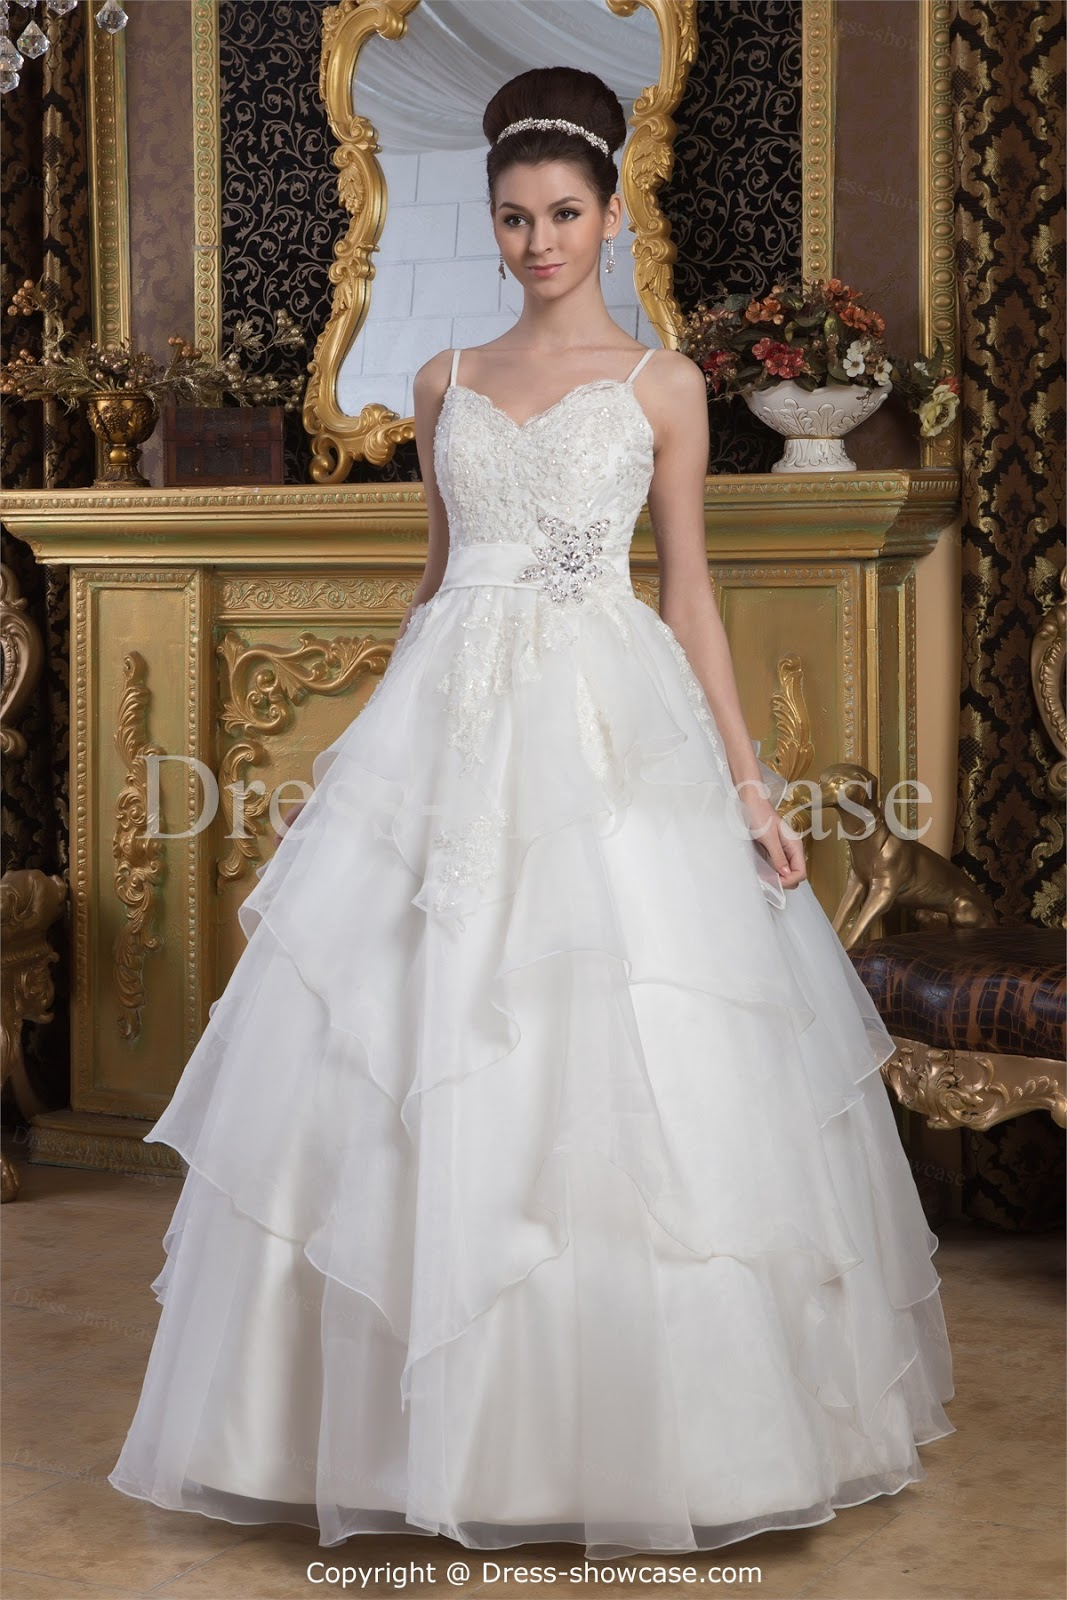 Wedding Dresses For Petite Women